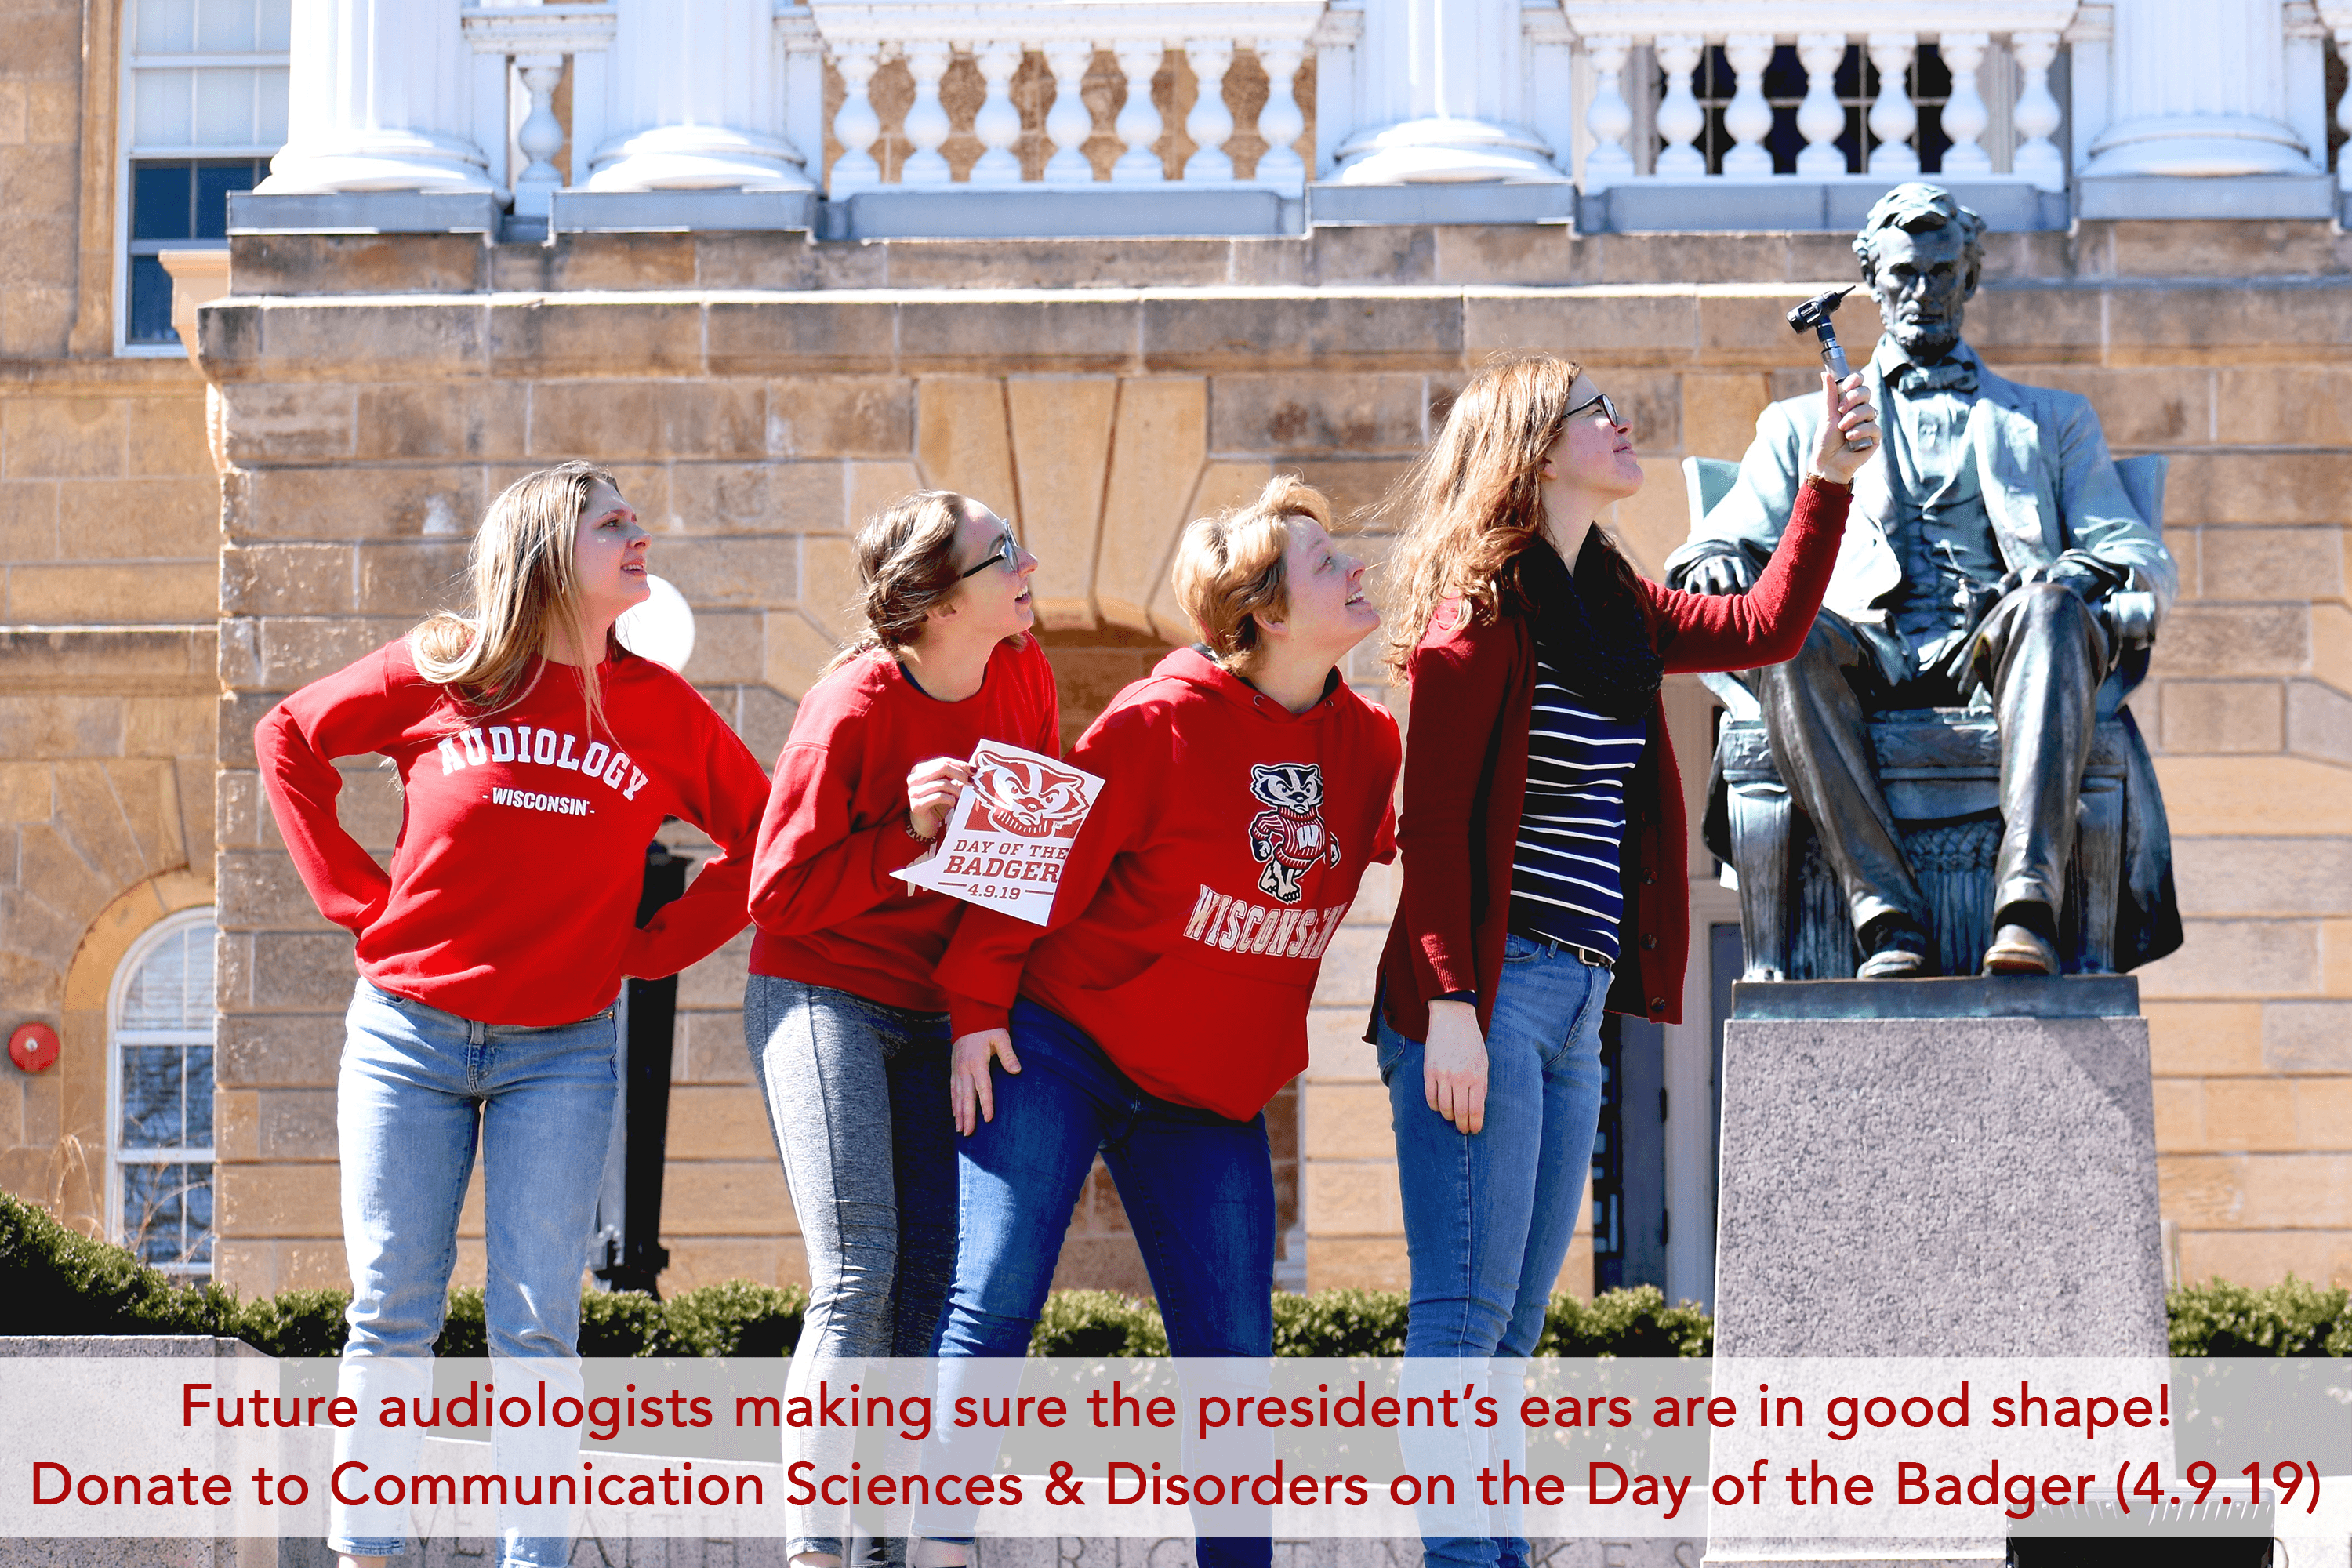 Audoliogy students posing with statue of Abraham Lincoln on Bascom Hill. Day of the Badger.